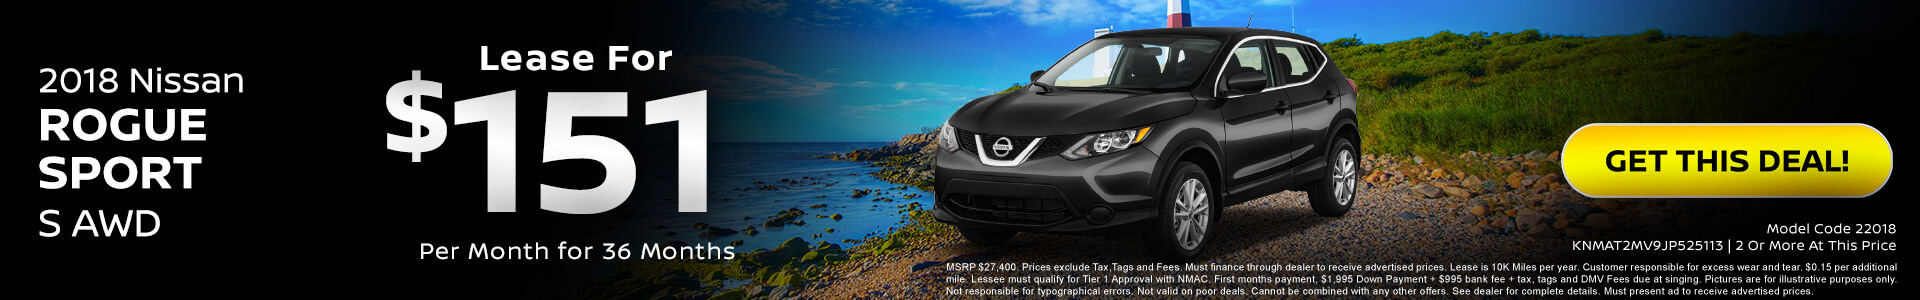 Nissan Rogue Sport $151 Lease